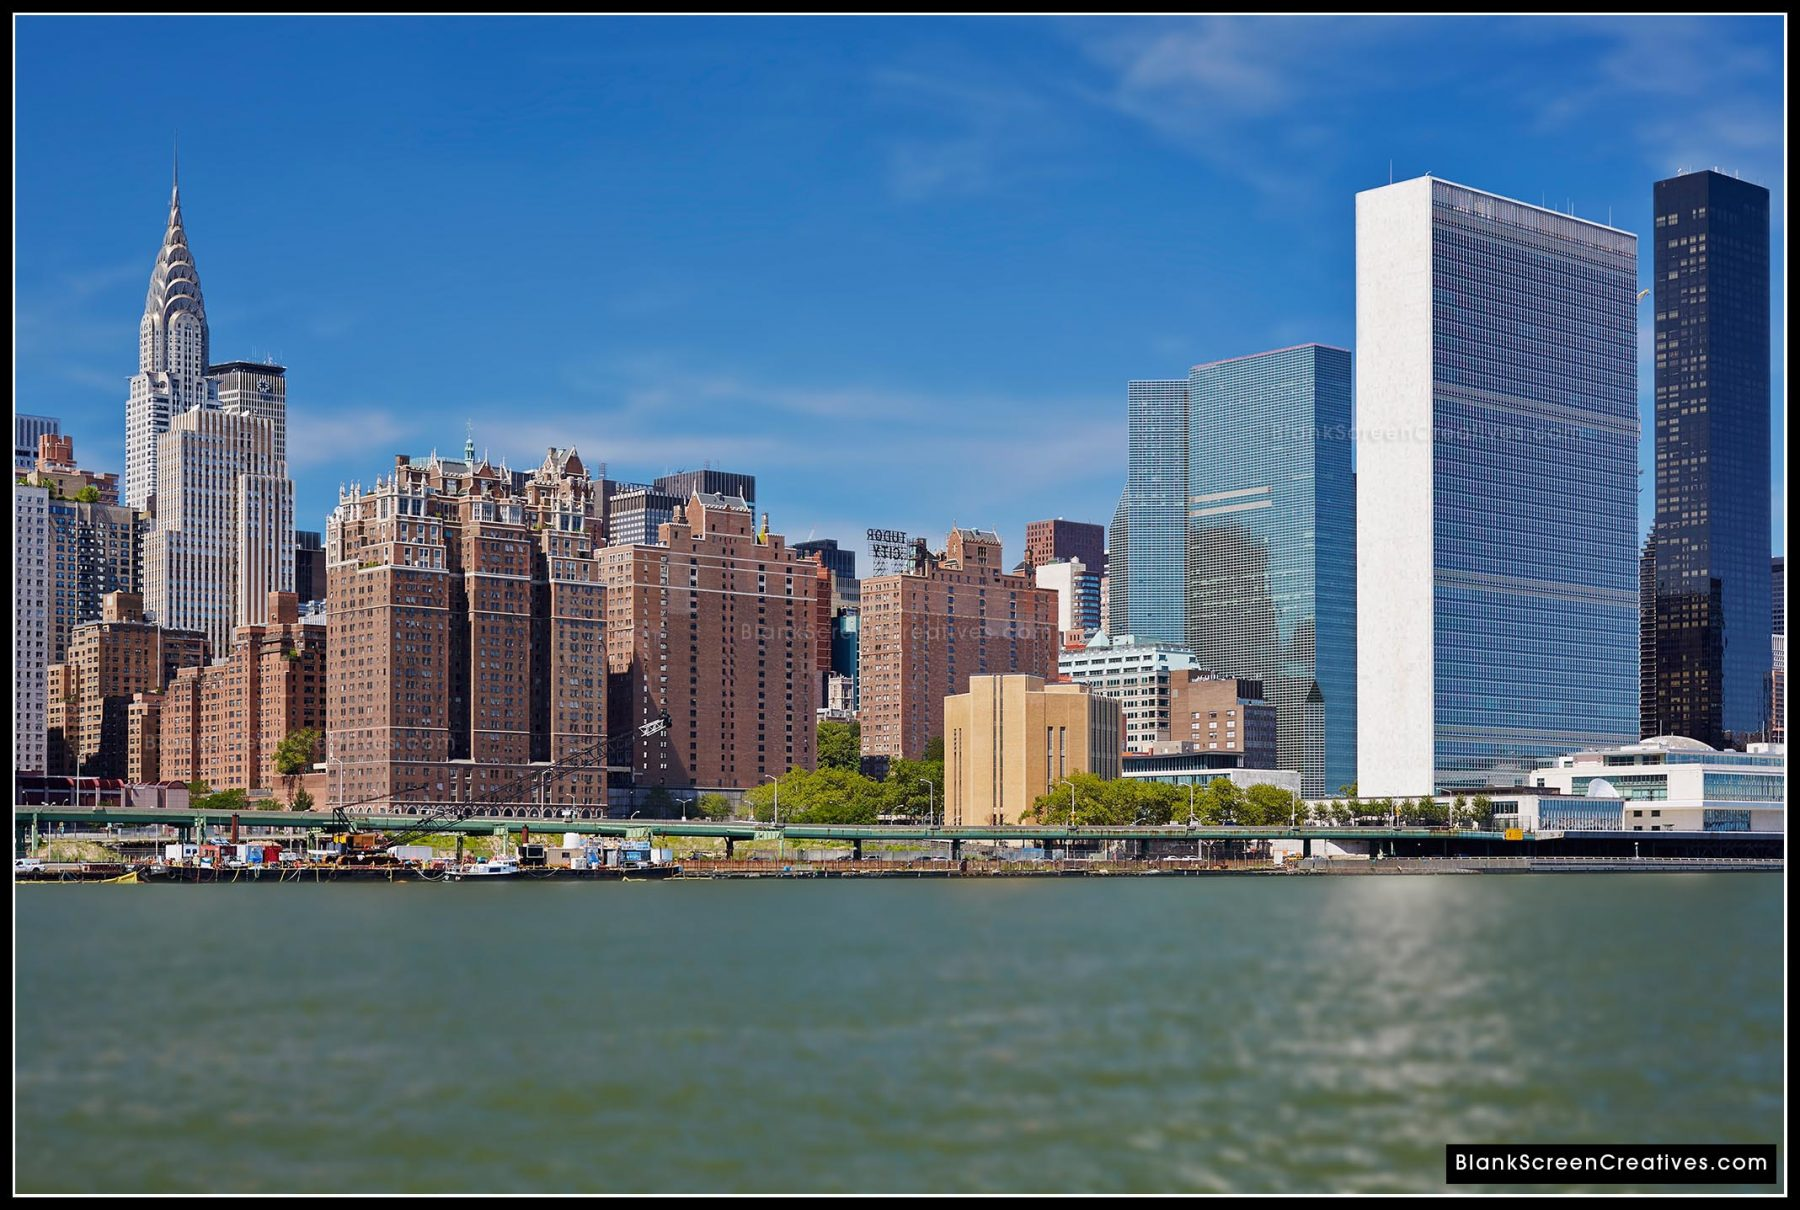 Chrysler Building, United Nations & Tudor City